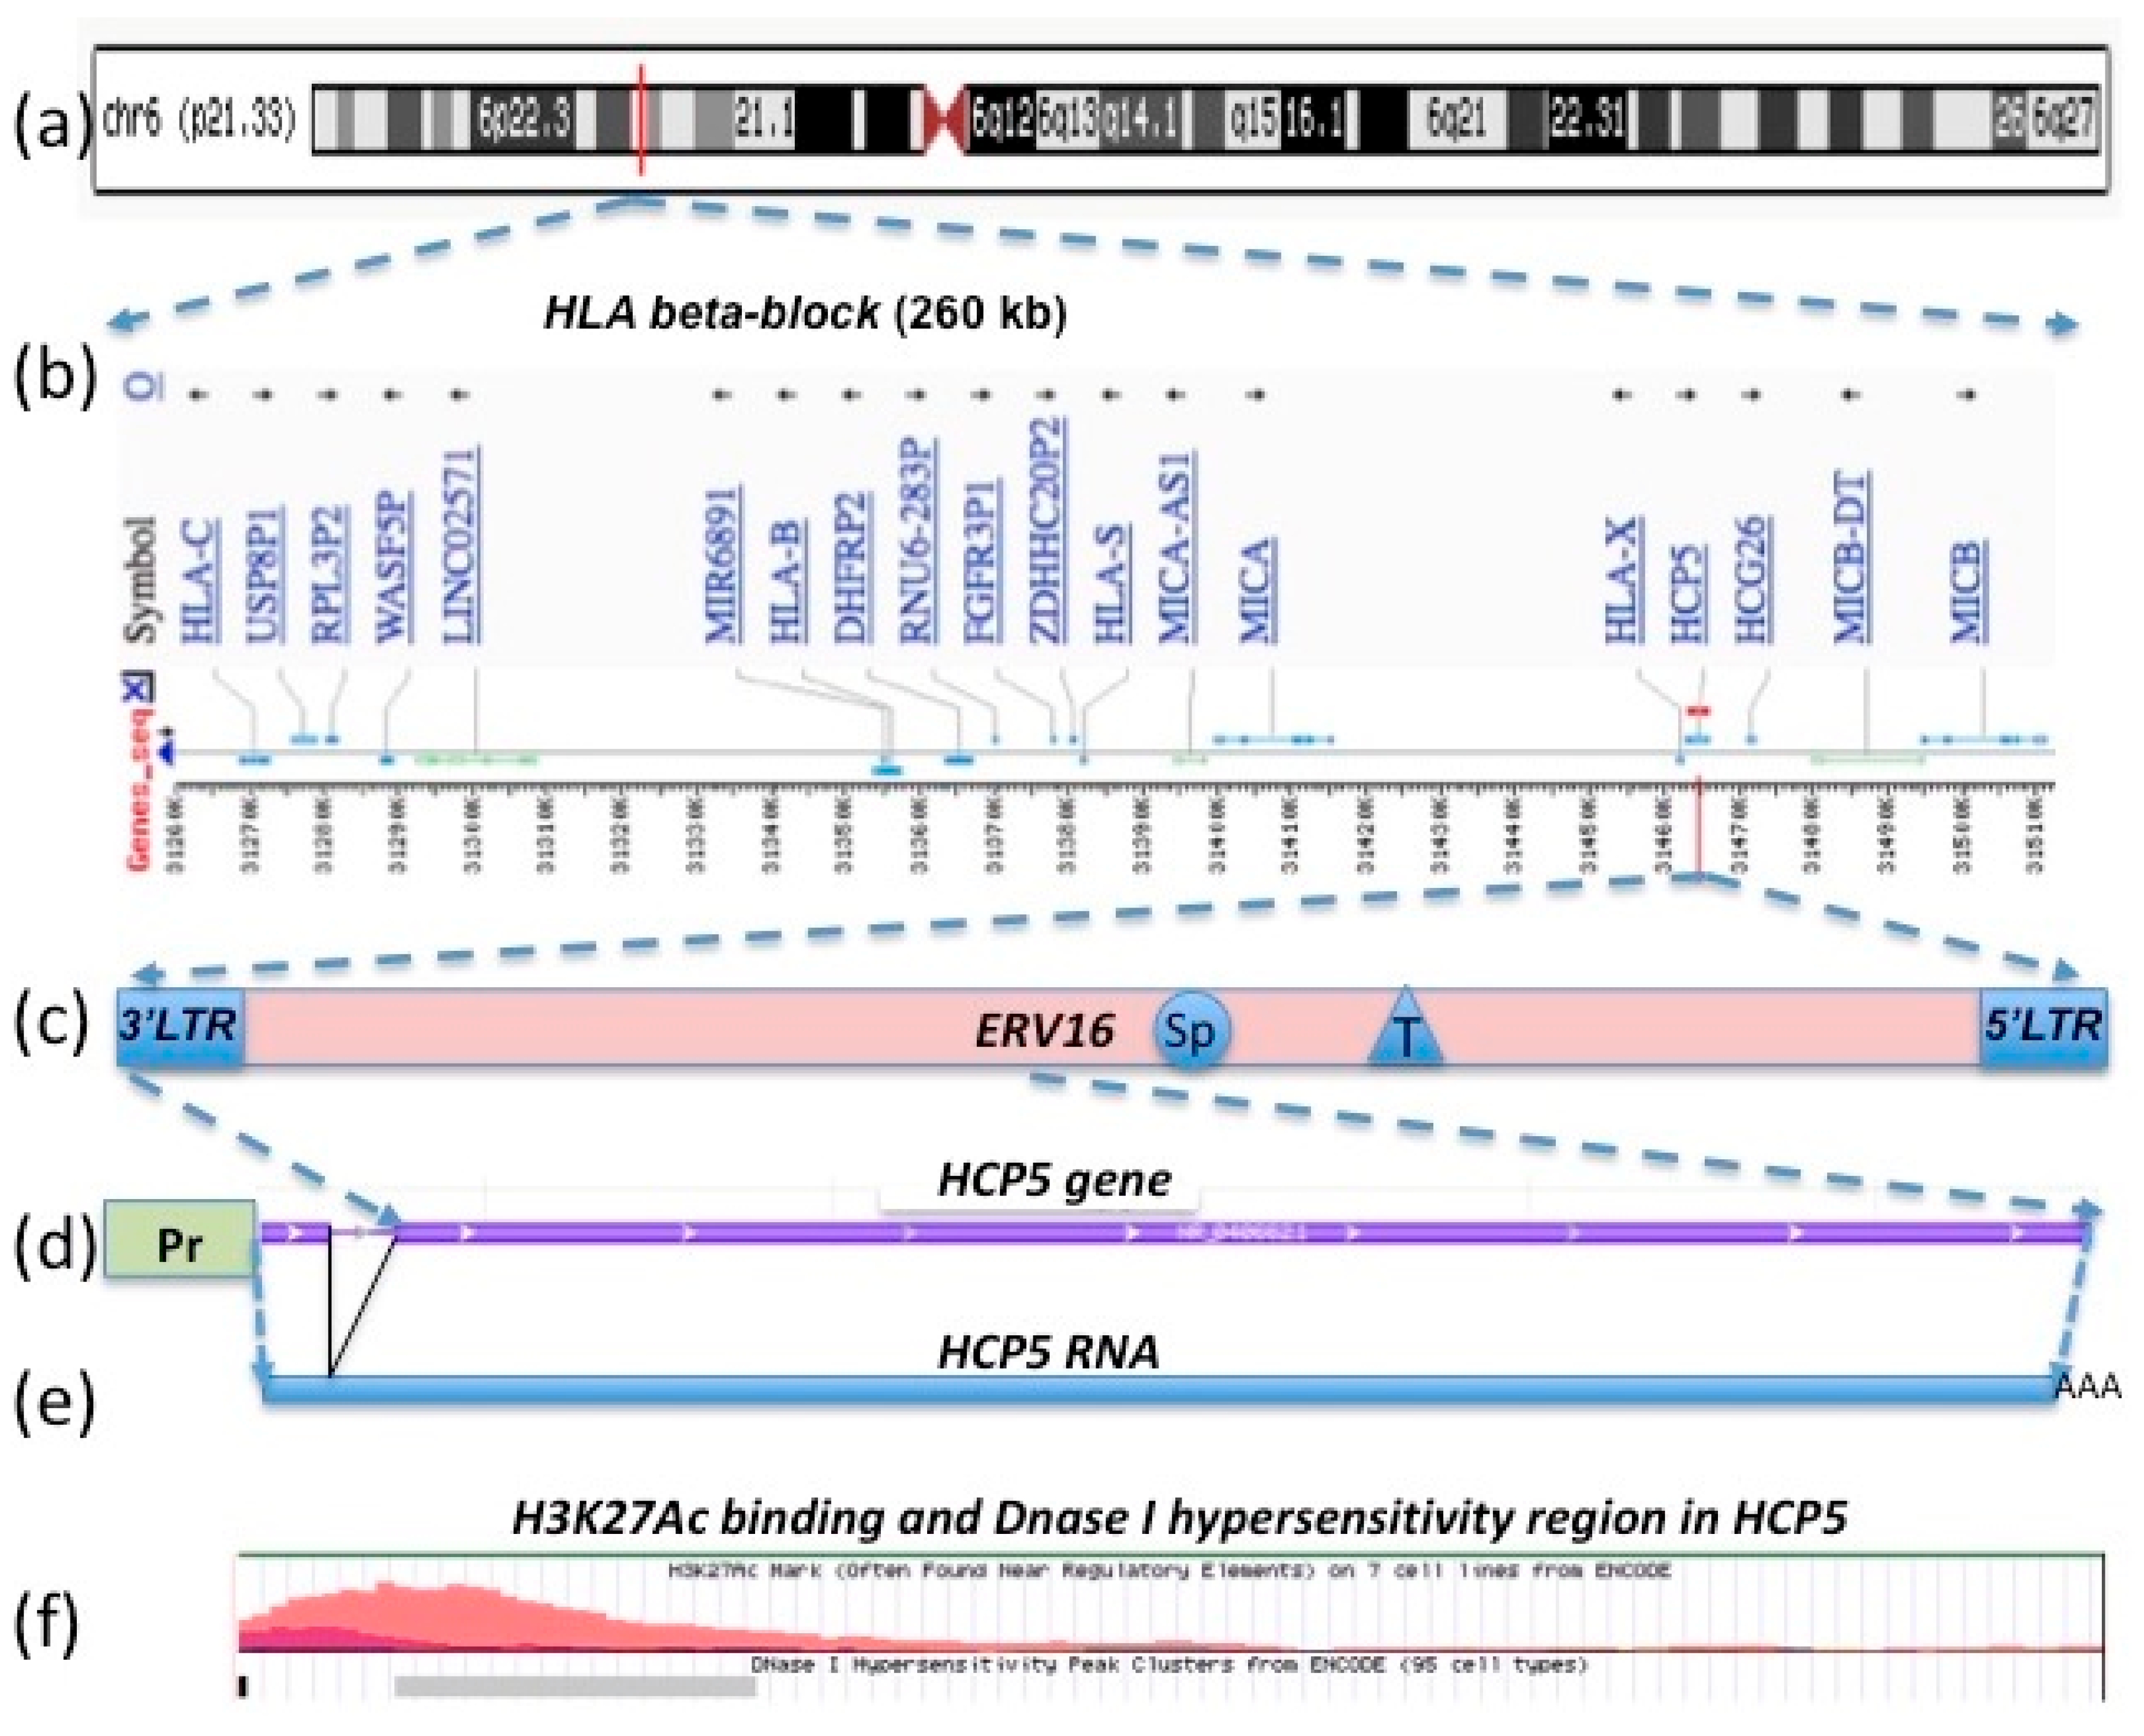 Figure 1. Location of the HCP5 gene (d) within the ERV16 element (c) and the human leukocyte antigen (HLA) class I region of the beta-block (b) on chromosome 6 at 6p21.33 (a). The HLA class I promoter region (the green rectangle labeled as Pr) for the 2630 bp HCP5 gene (d) initiates transcription of the 2547 bp lnc HCP5 RNA (e). The 91 bp intron in the HCP5 gene is represented by the thin grey line between the violet rectangular lines (d). The AluSp, THE1B, and LTR162B insertions within the 6173 bp ERV16 sequence [30] (c) are indicated by the labeled circle, triangle, and rectangles, respectively (see Table 1 for more details). The H3K27Ac binding (orange curve) and Dnase I hypersensitivity region (grey horizontal rectangle) associated with the HCP5 gene sequence (d) and sourced from the University of California, Santa Cruz (UCSC) genomic browser (Table S1) are shown on line (f).